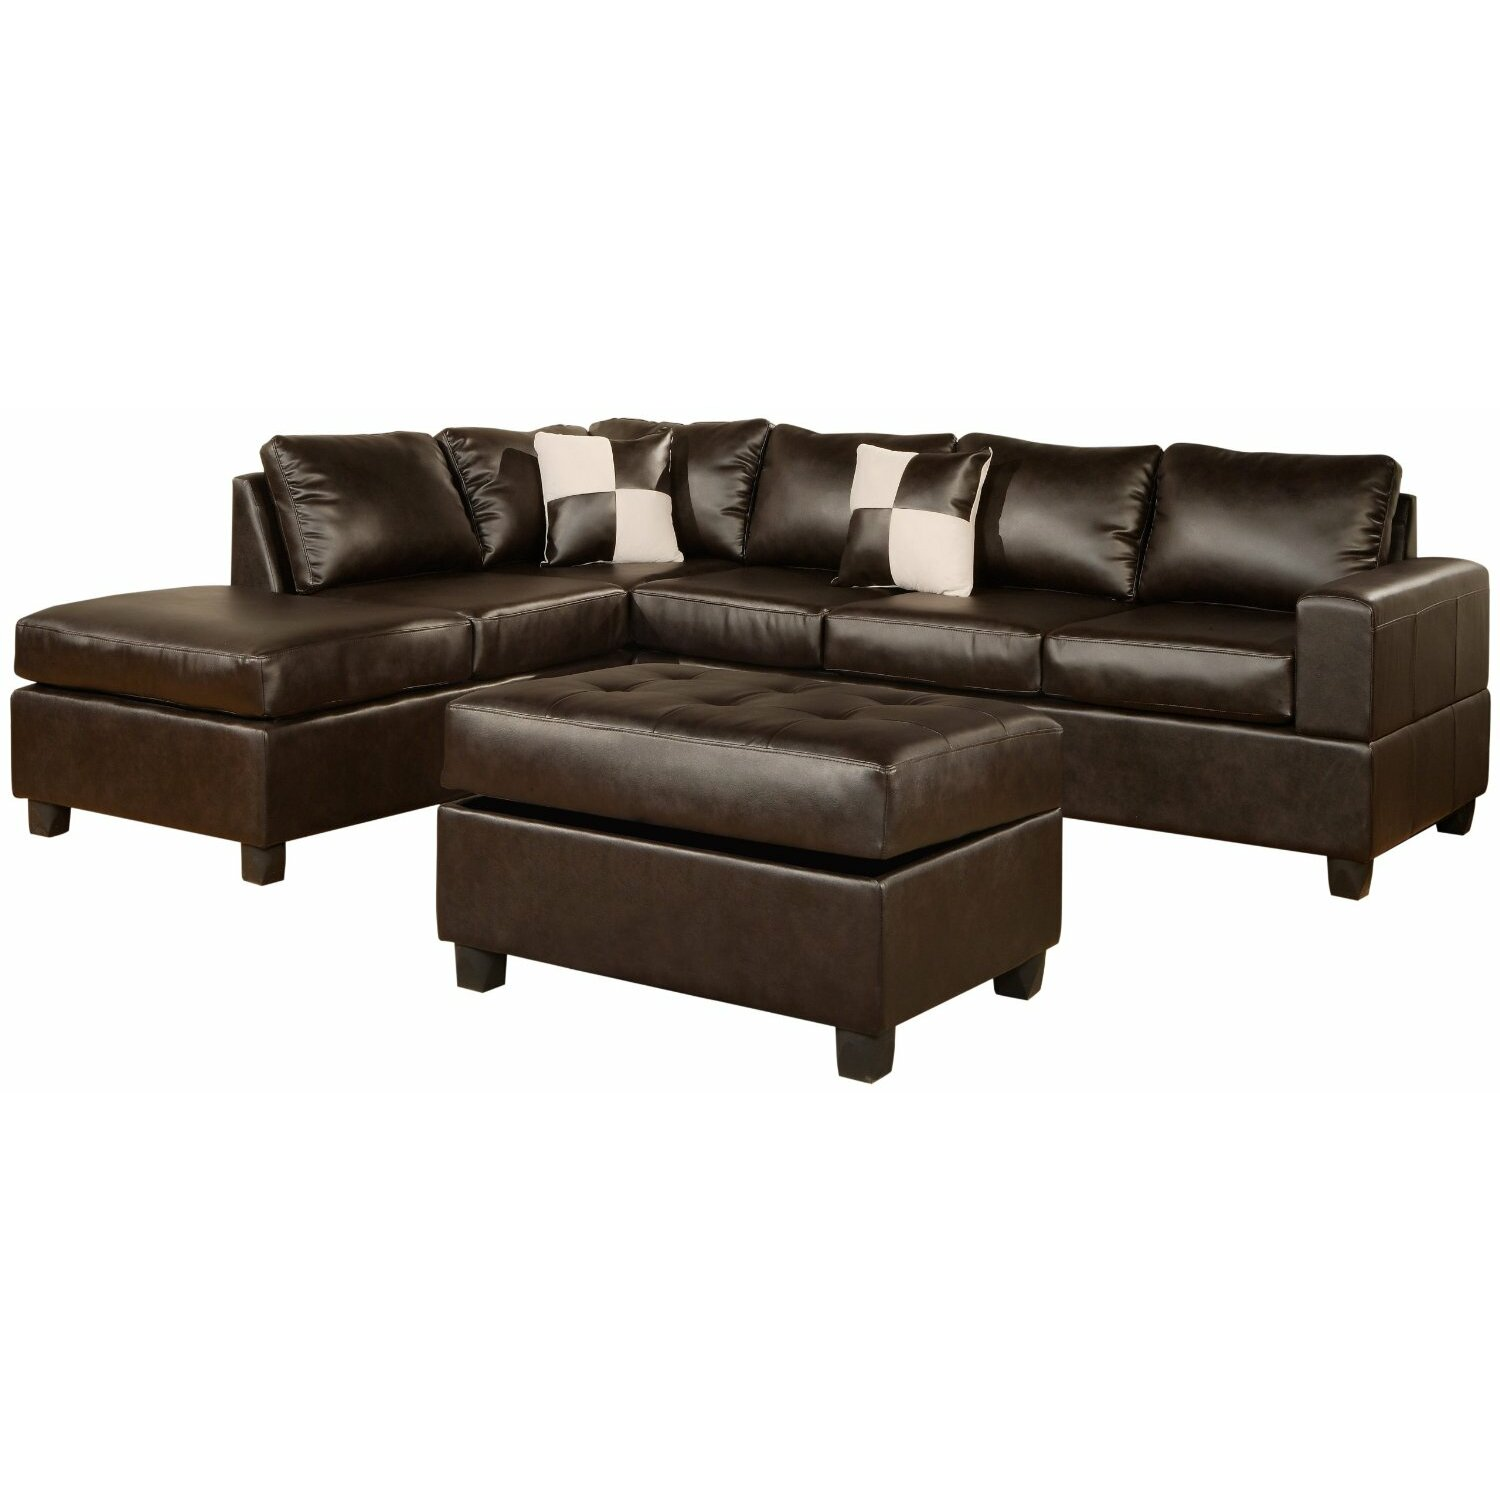 Madison home usa reversible chaise sectional reviews for Imagenes de sofas